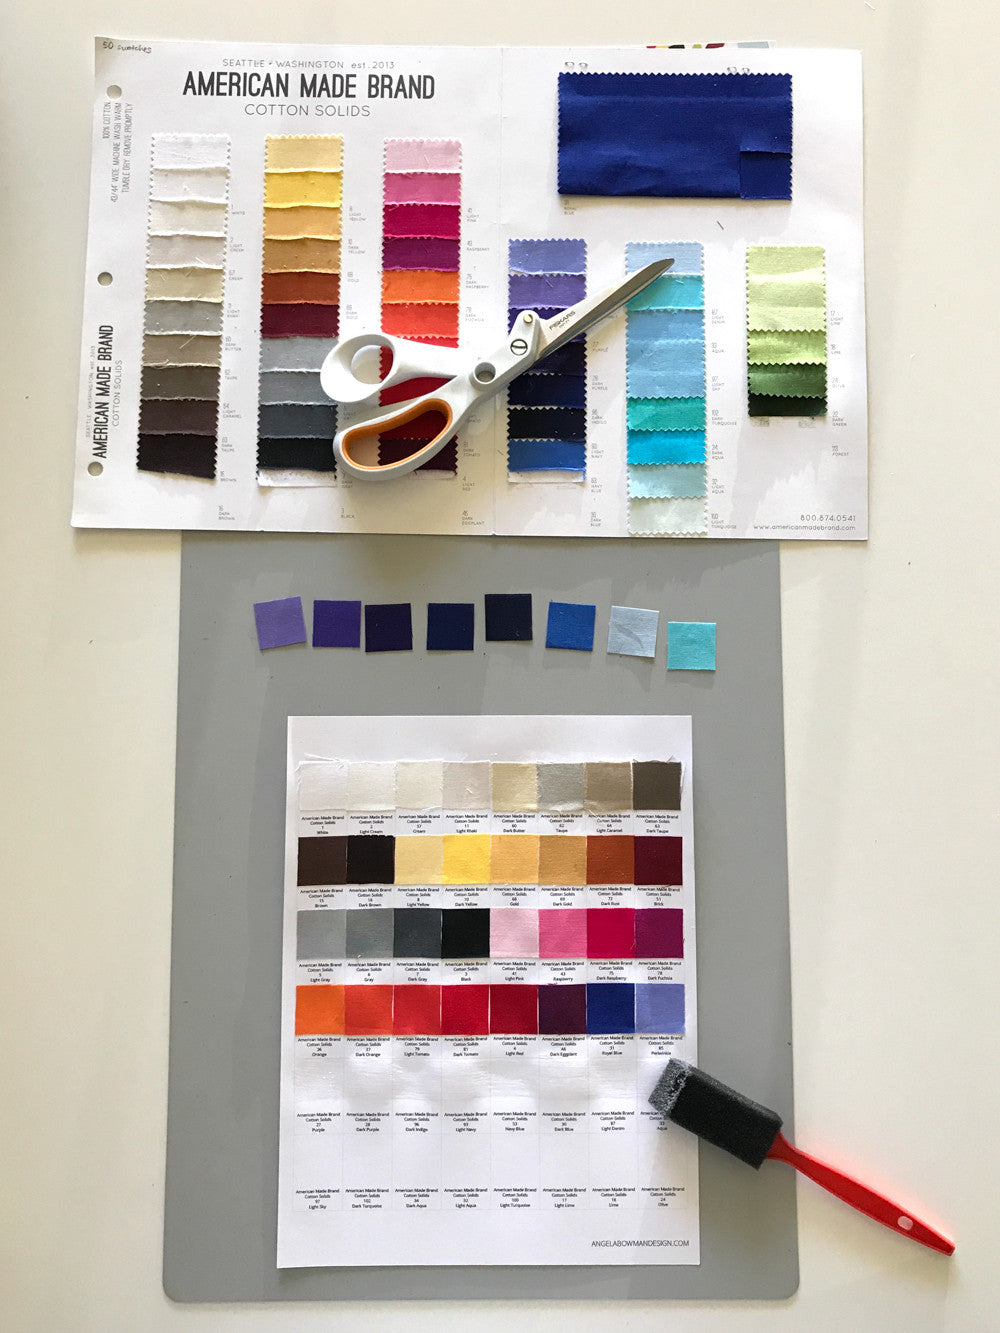 How to Organize Fabric Swatches with Magnets, a tutorial by Angela Bowman of www.angelabowmandesign.com